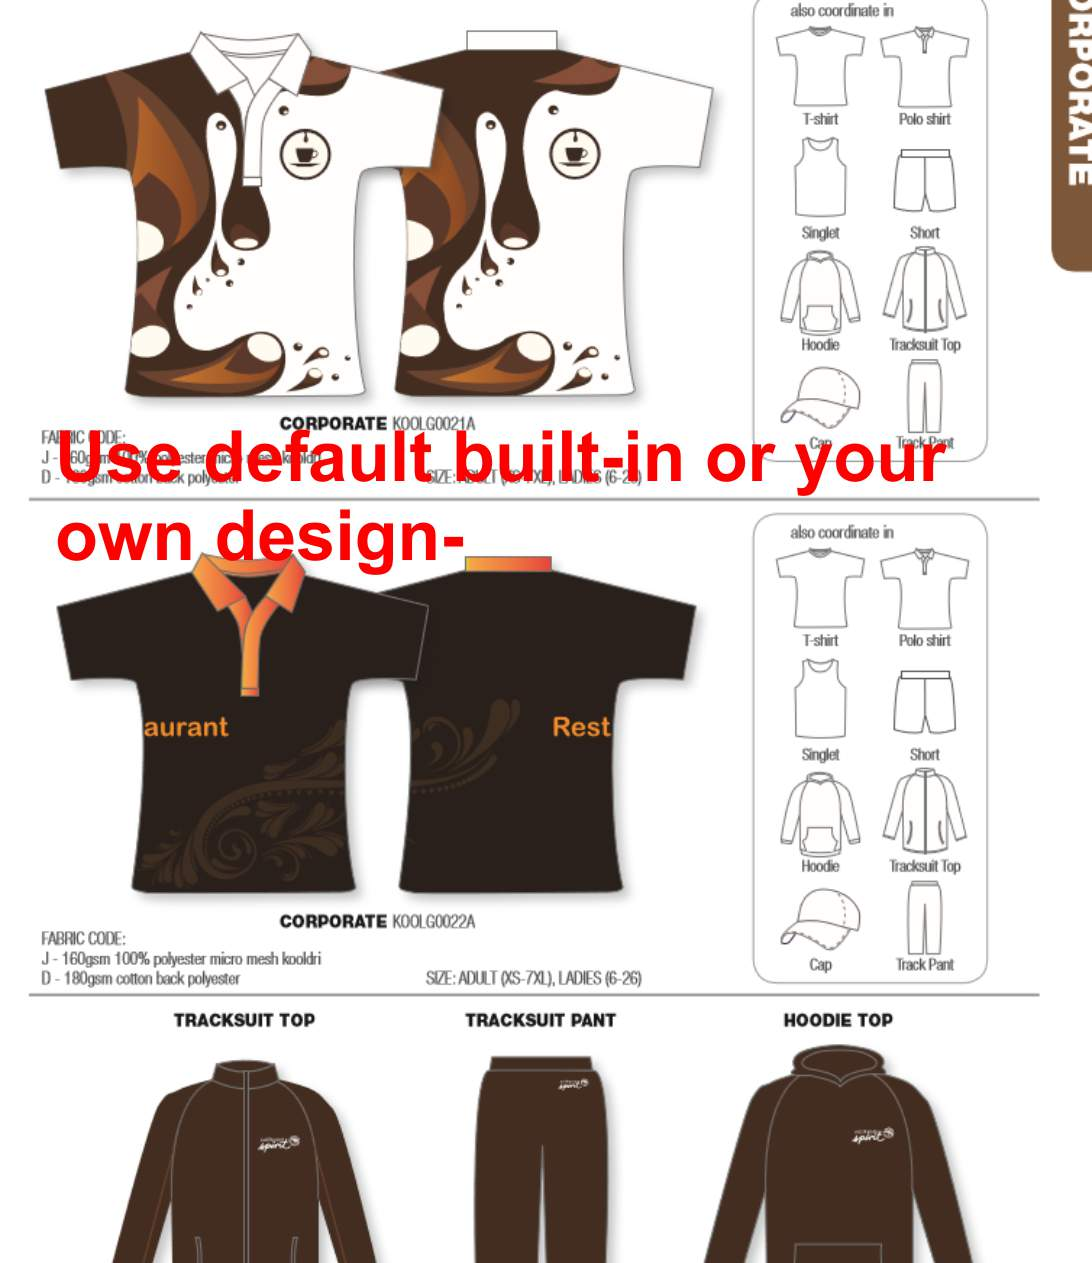 Design your own t-shirt and save it - Corporate Style 1 Design Your Own Color Minimum 25 Units